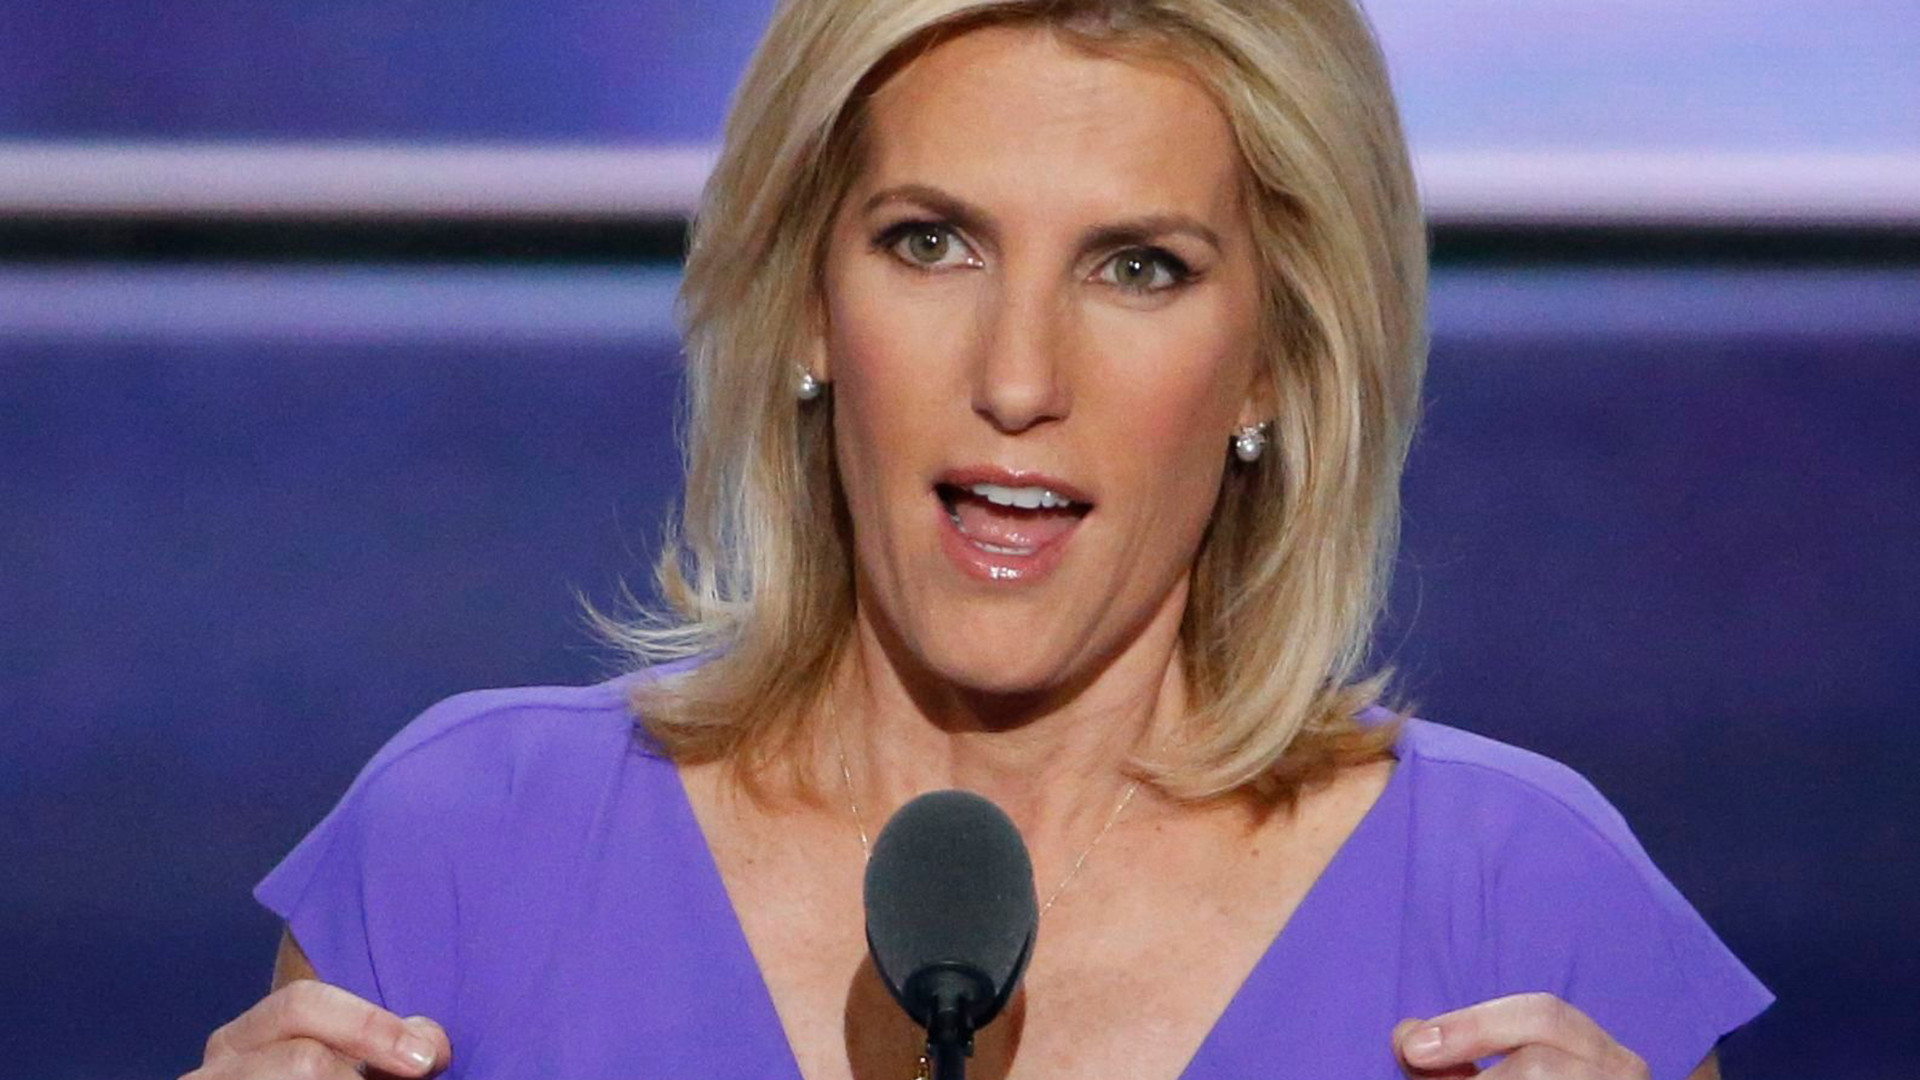 russian bots are tweeting their support of embattled fox news host laura ingraham